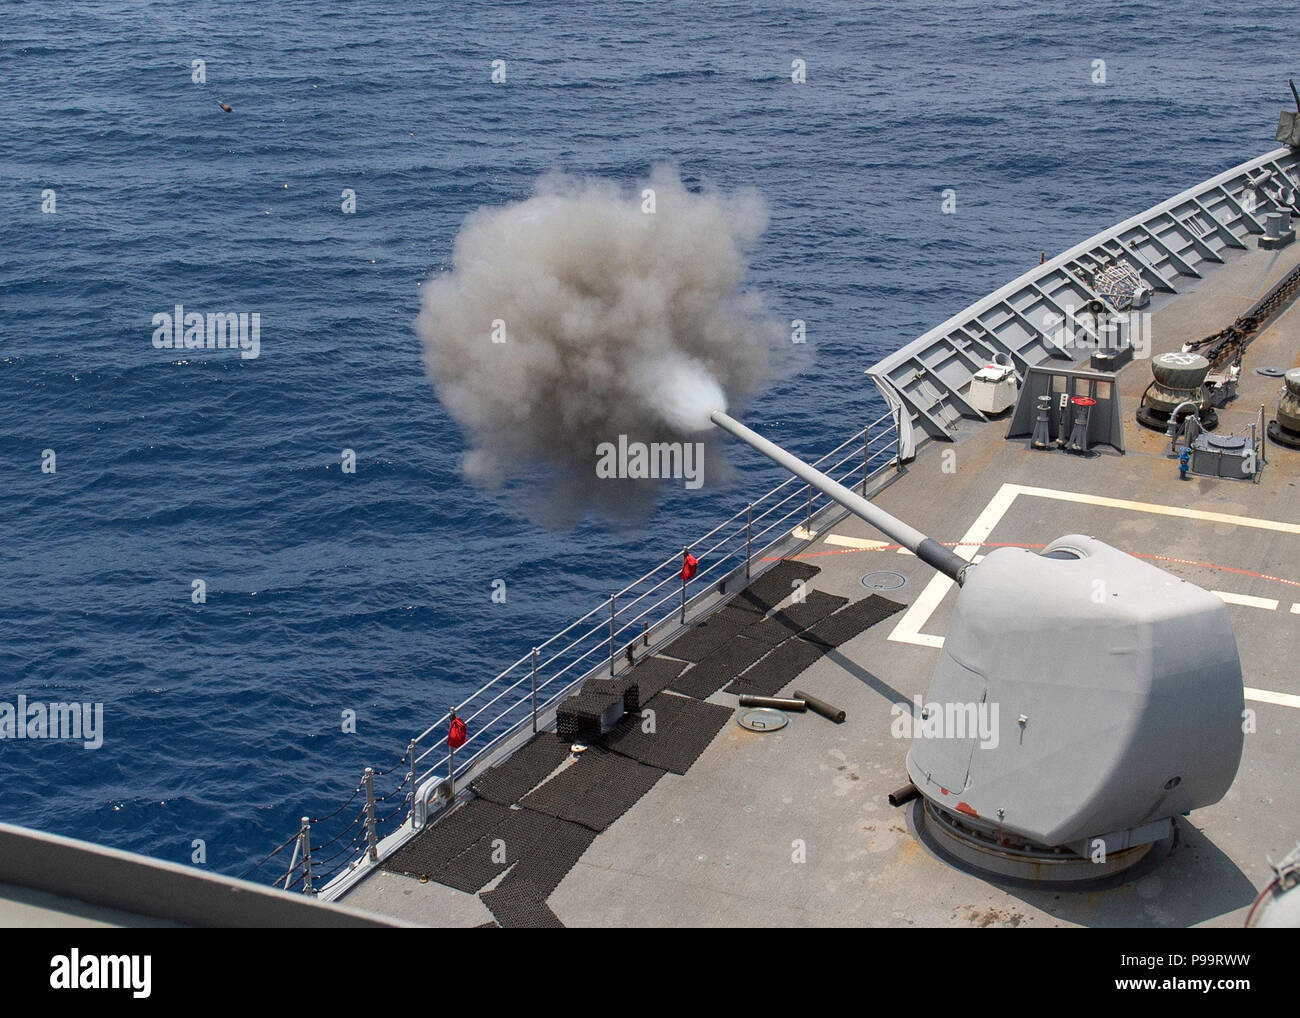 180715-N-YR245-0228 PACIFIC OCEAN (July 15, 2018) The guided-missile cruiser USS Lake Champlain (CG 57) fires one of its Mark 45 5-inch guns during a live-fire exercise during Rim of the Pacific (RIMPAC) exercise, July 15. Twenty-five nations, 46 ships and 5 submarines, and about 200 aircraft and 25,000 personnel are participating RIMPAC from June 27 to Aug. 2 in and around the Hawaiian Islands and Southern California. The world's largest international maritime exercise, RIMPAC provides a unique training opportunity while fostering and sustaining cooperative relationships among participants cr Stock Photo